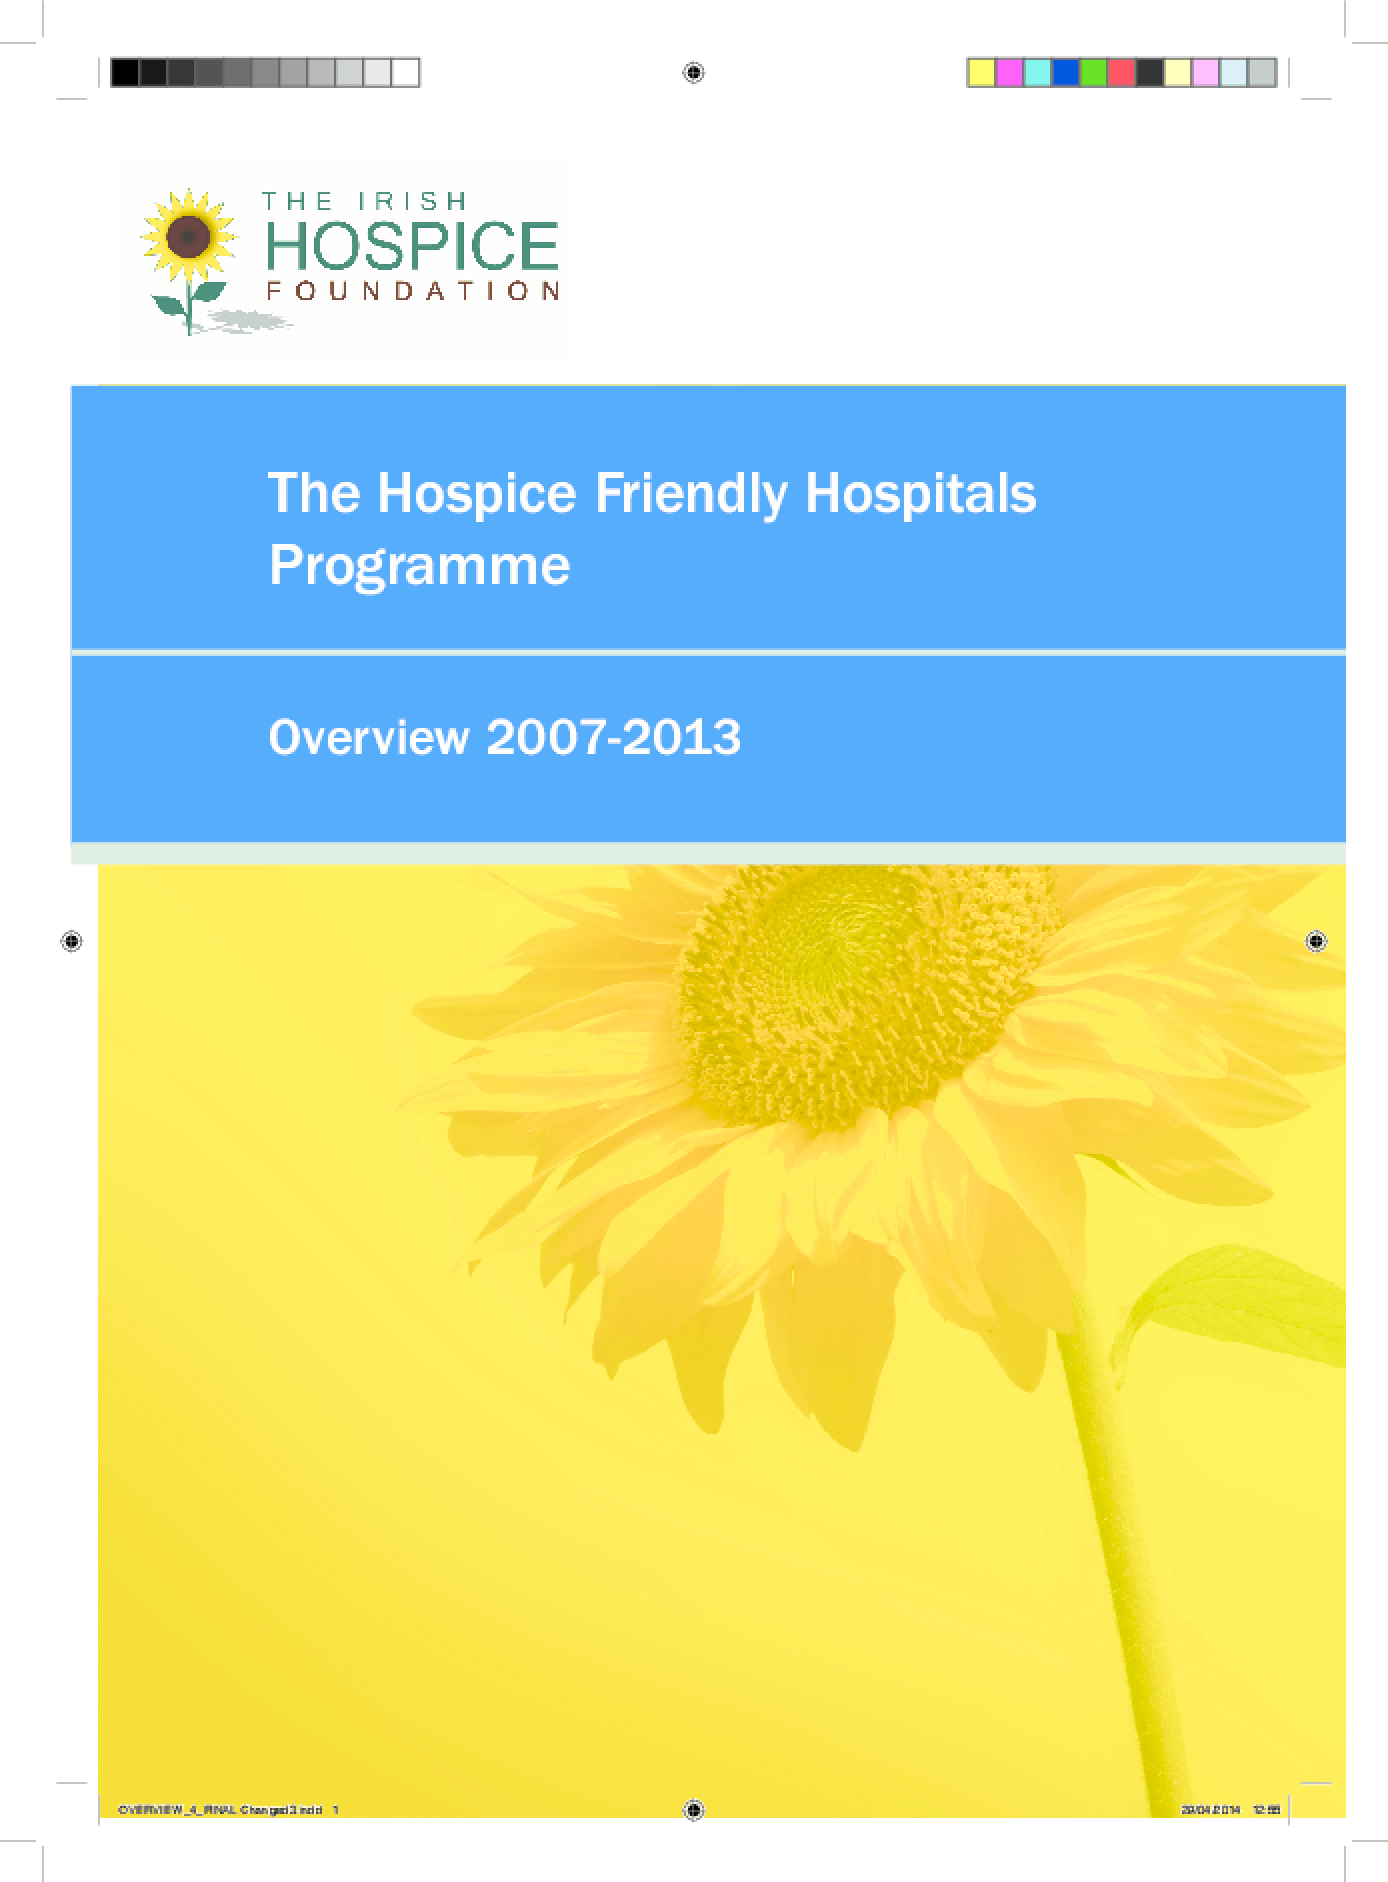 The Hospice Friendly Hospitals Programme